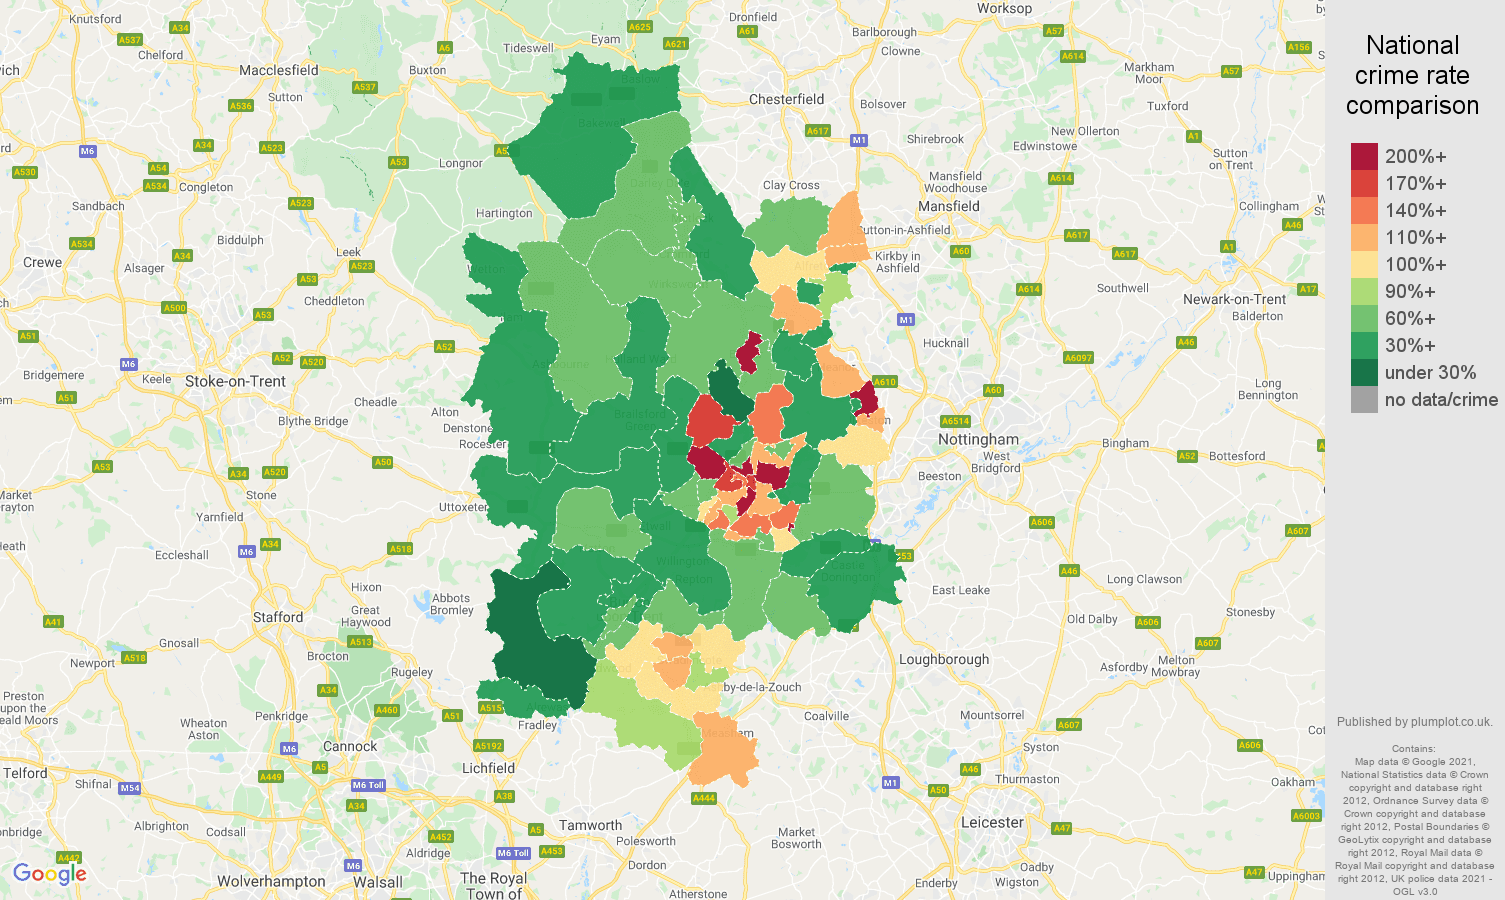 Derby criminal damage and arson crime rate comparison map